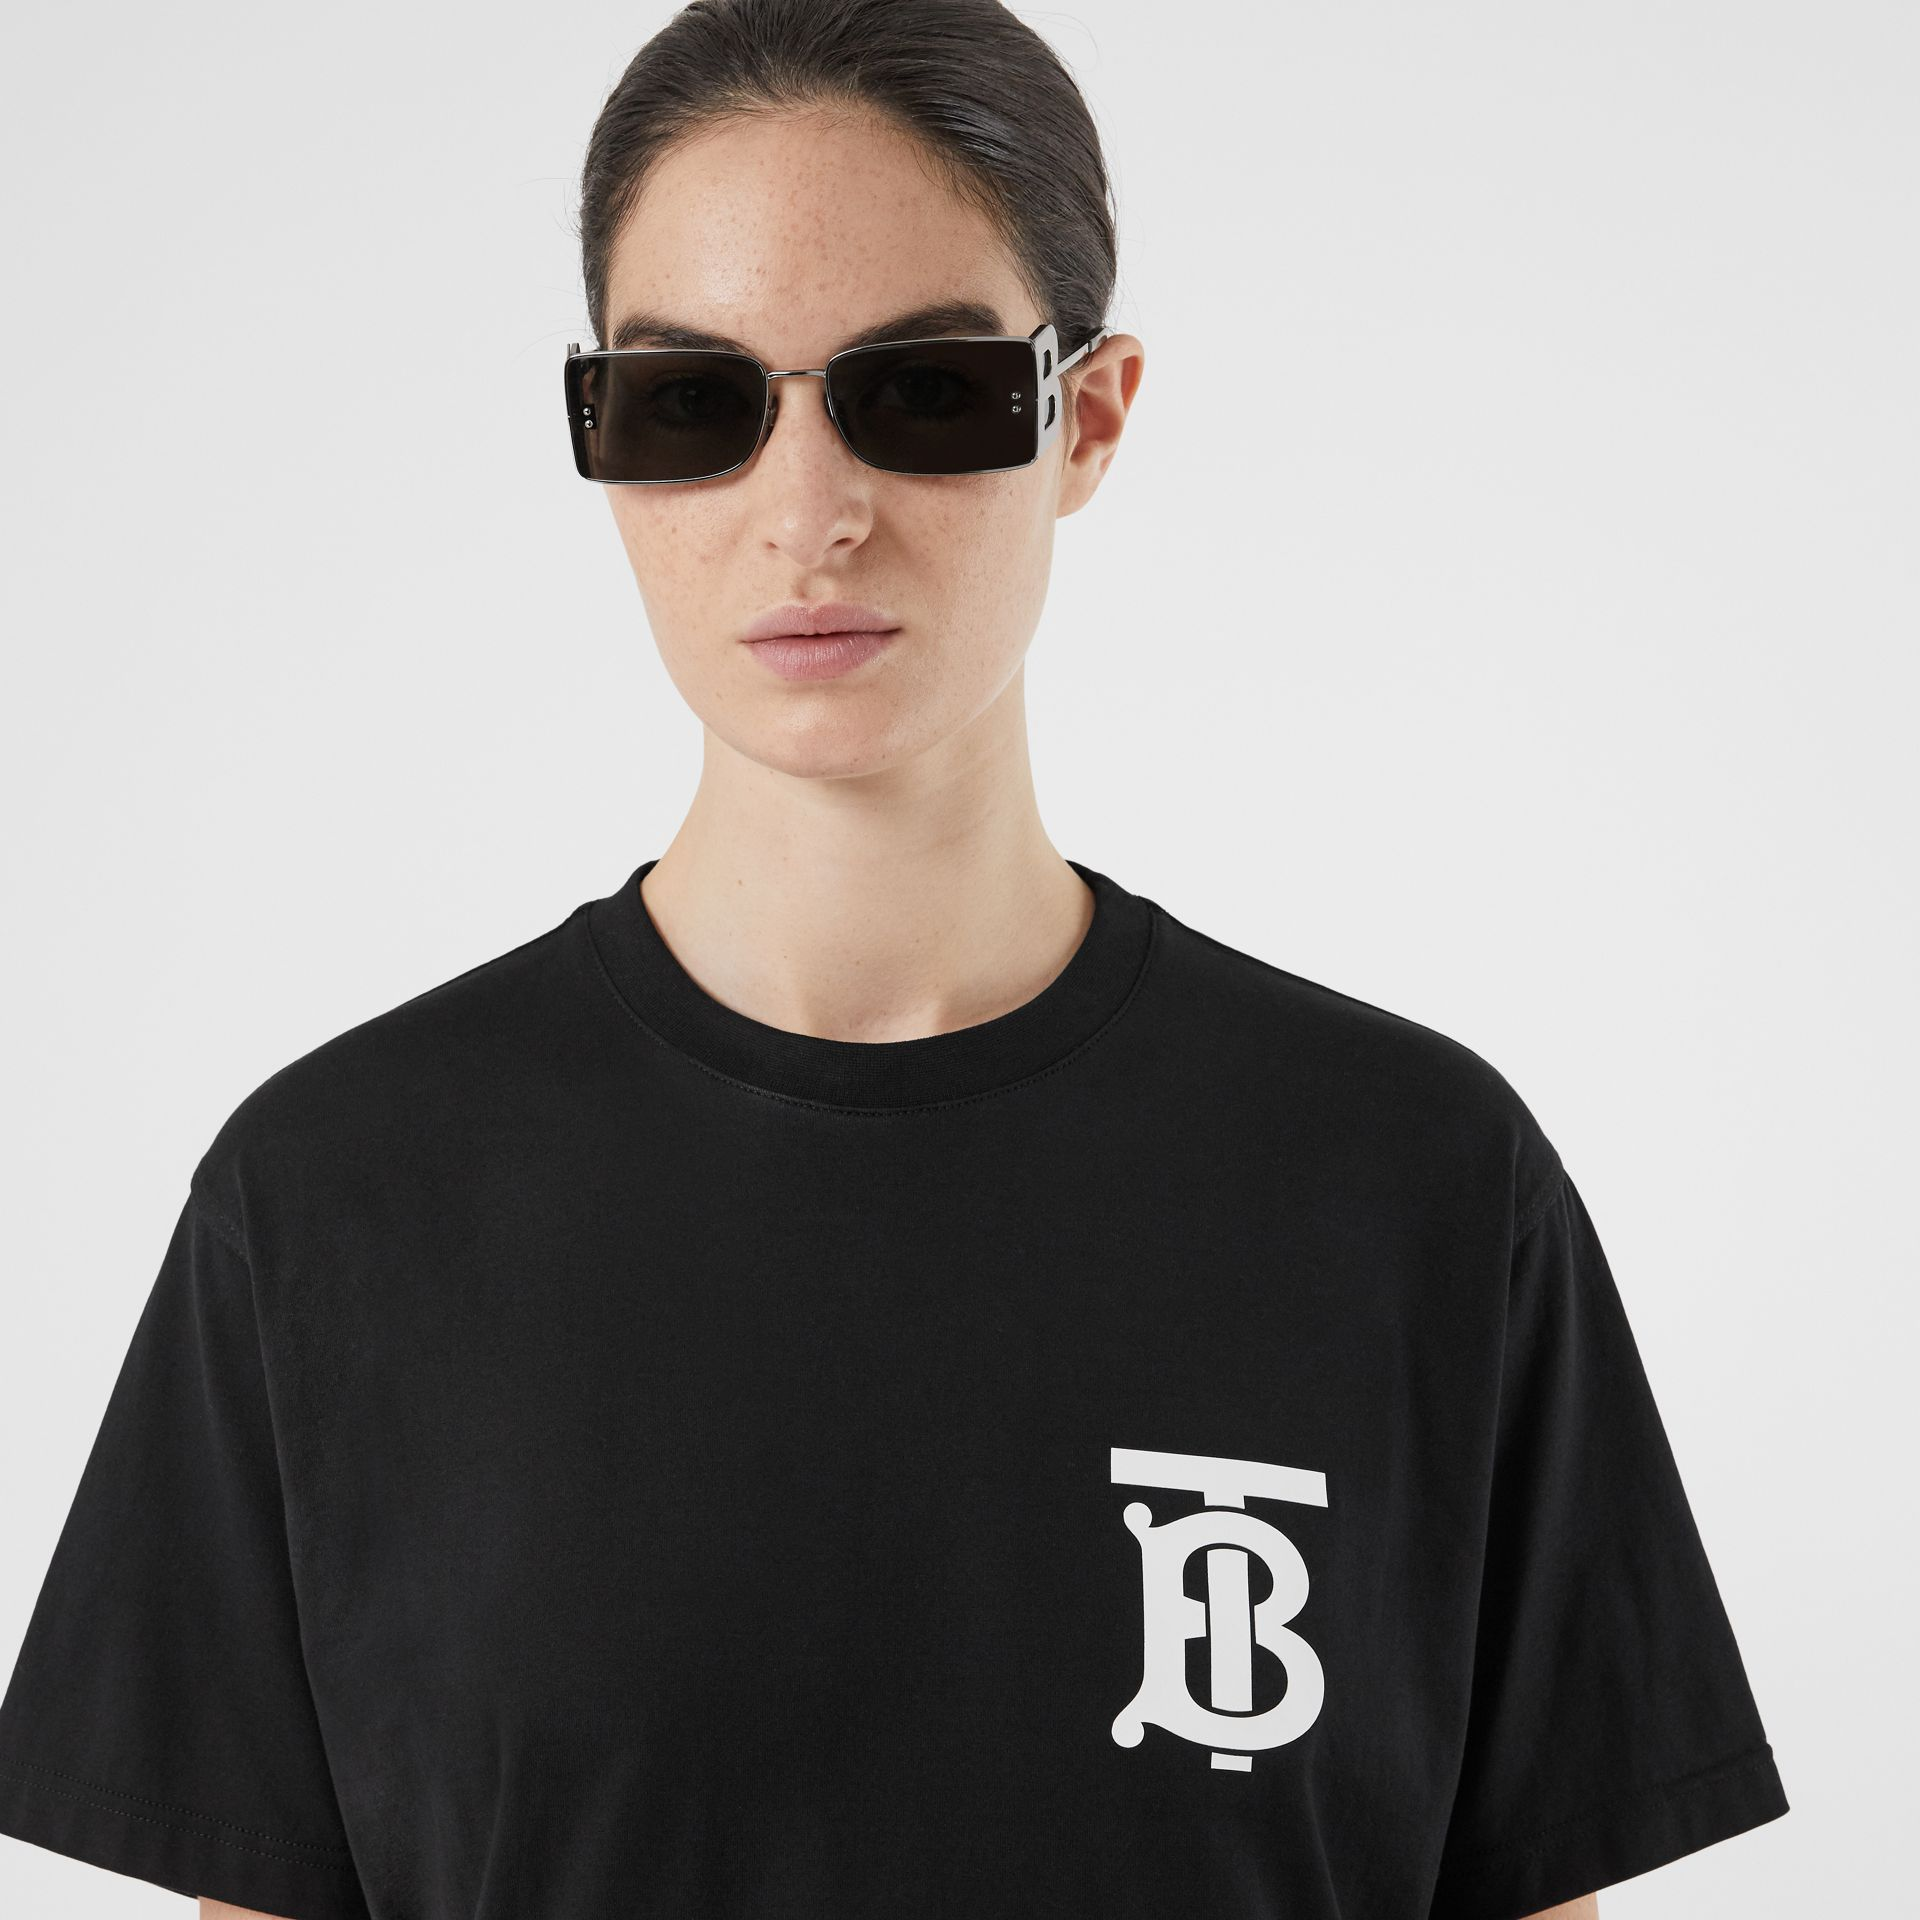 Monogram Motif Cotton Oversized T-shirt in Black - Women | Burberry - gallery image 1